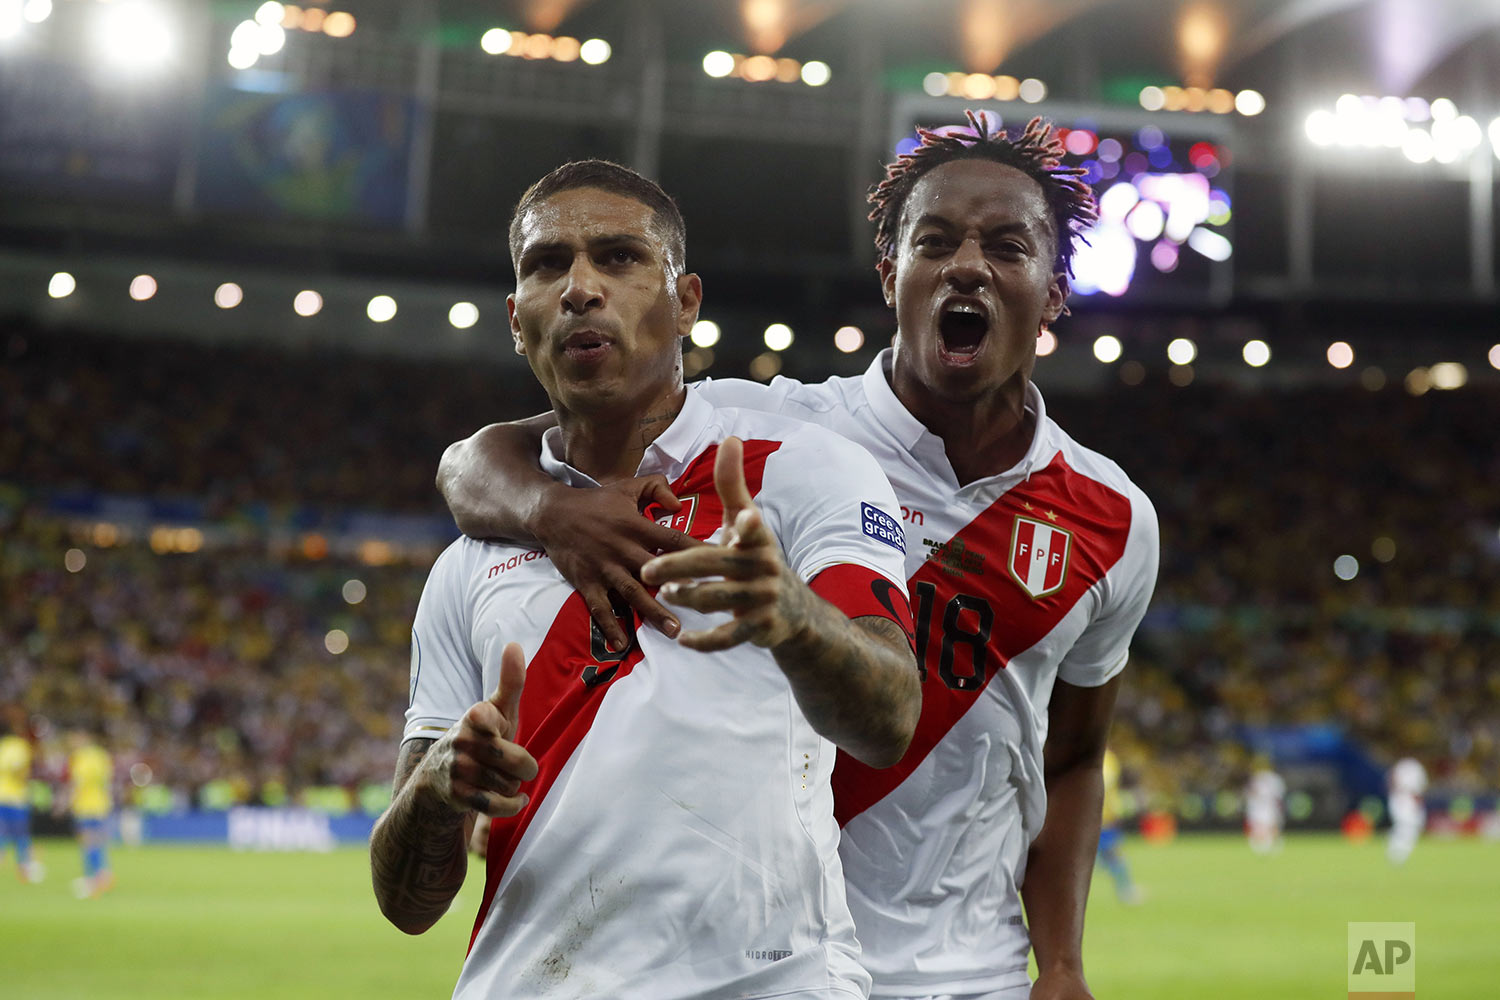 Peru's Paolo Guerrero, left, celebrates with teammate Andre Carrillo, after scoring a penalty kick against Brazil during the final soccer match of the Copa America at Maracana stadium in Rio de Janeiro, Brazil, Sunday, July 7, 2019. (AP Photo/Victor R. Caivano)